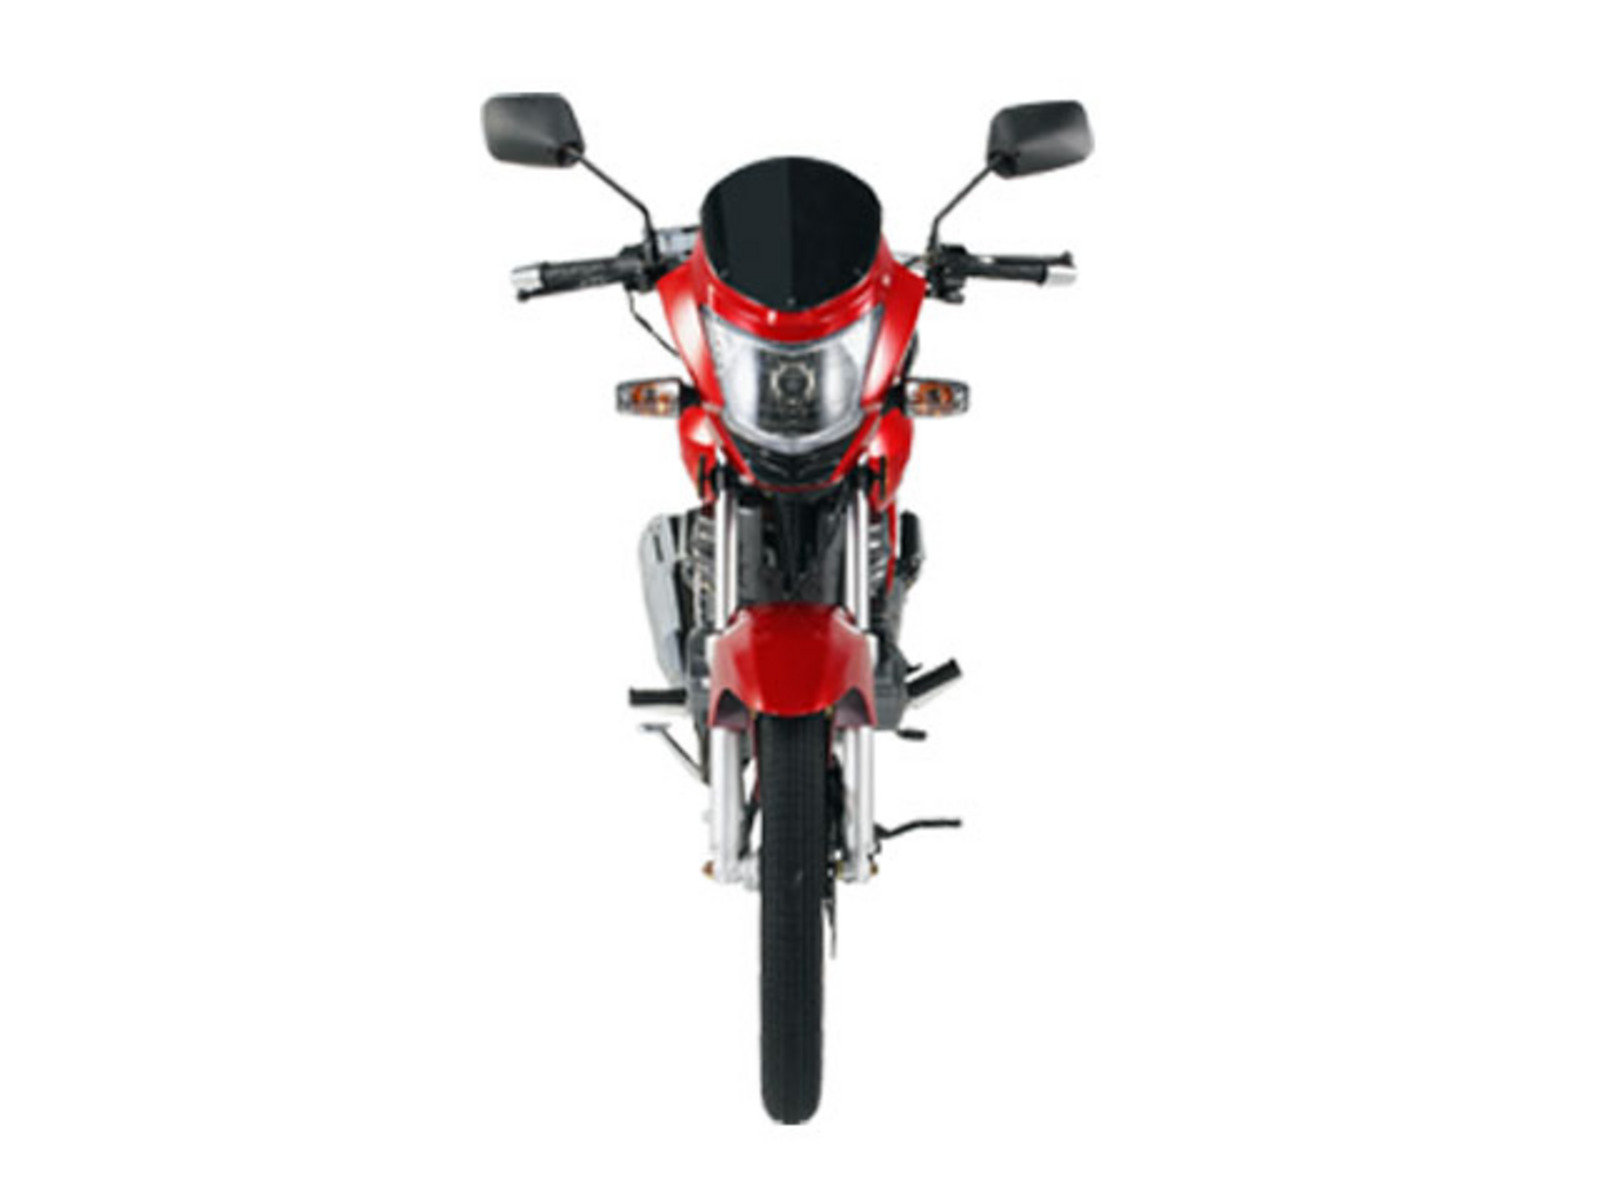 2013 - 2017 KYMCO K-PIPE 125 Review - Gallery - Top Speed